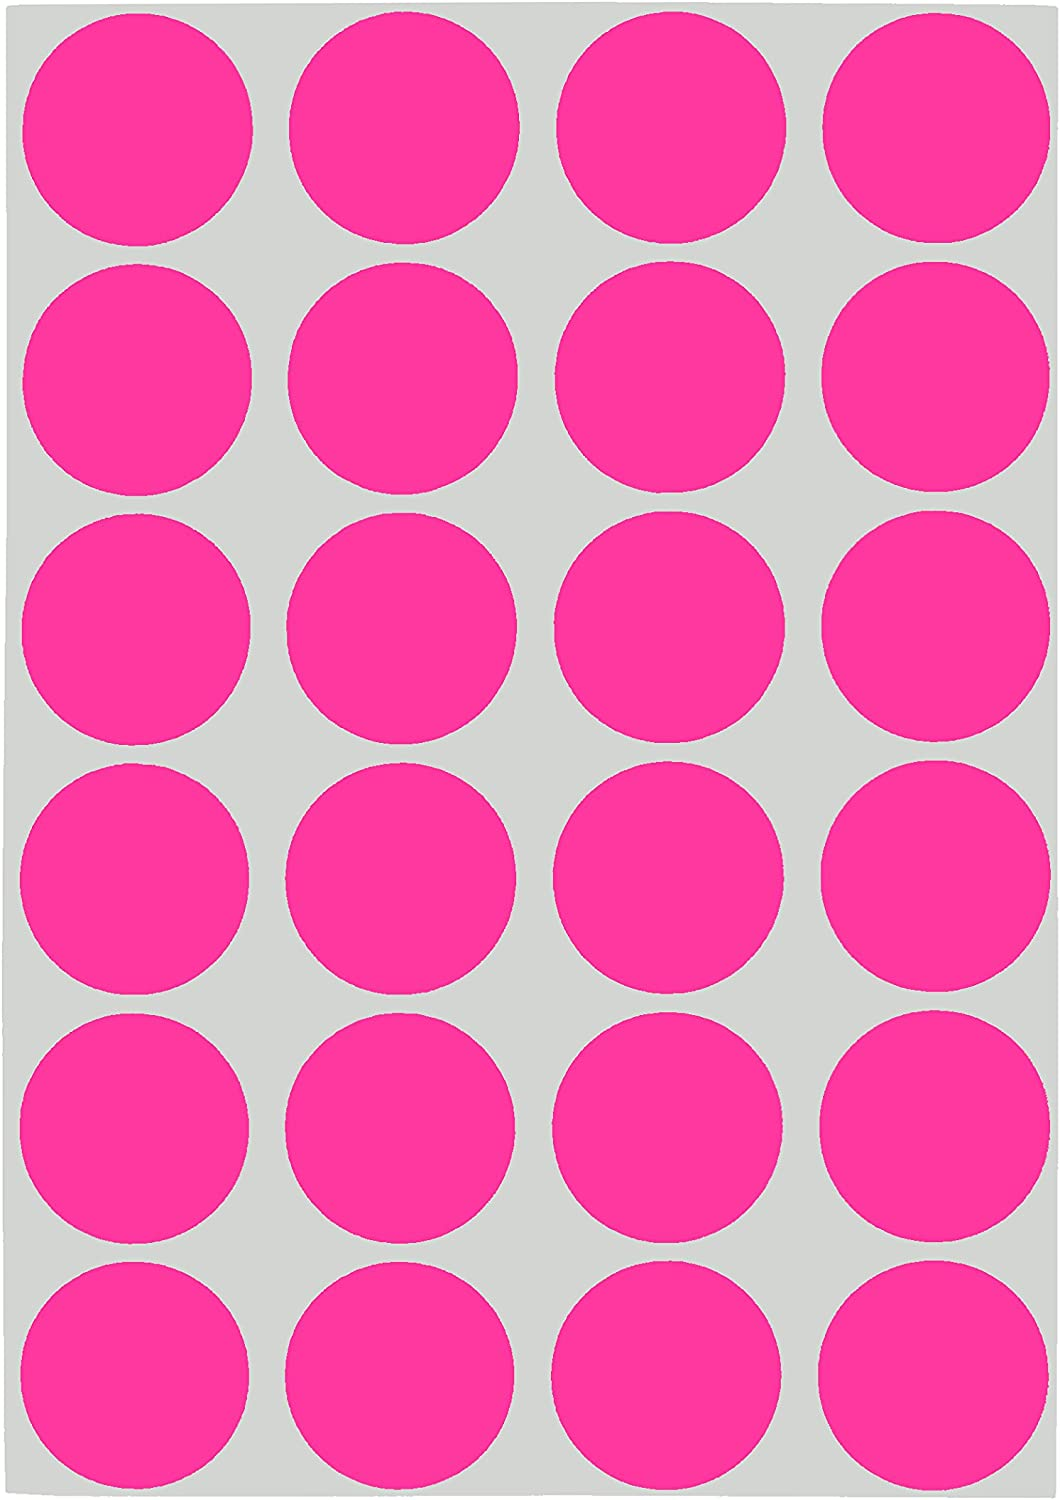 ChromaLabel 3/4 Inch Round Removable Color-Code Dot Stickers, 1008 pack, 24 Labels per Sheet, Fluorescent Pink